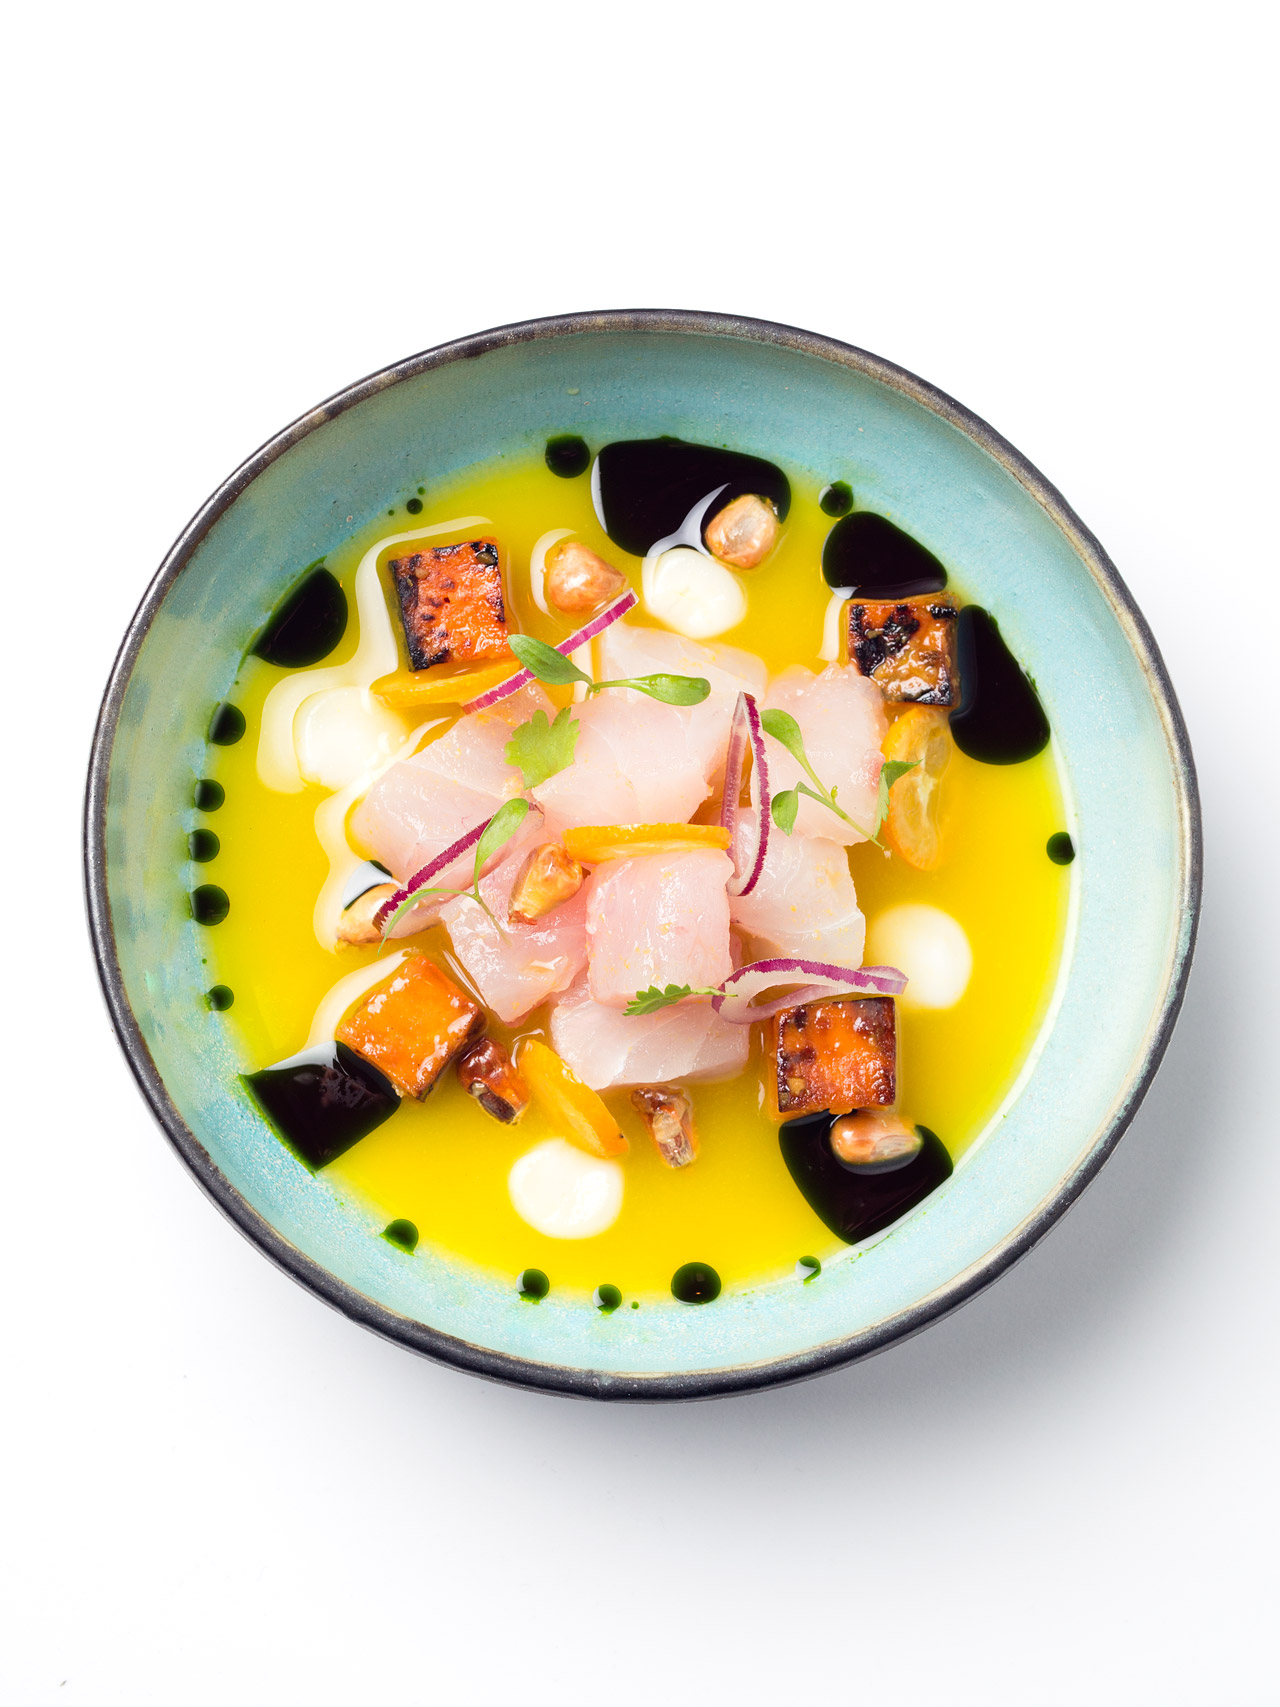 Sea bass ceviche with kumquats and leche de tigre at Restraurant Pakta, Barcelona